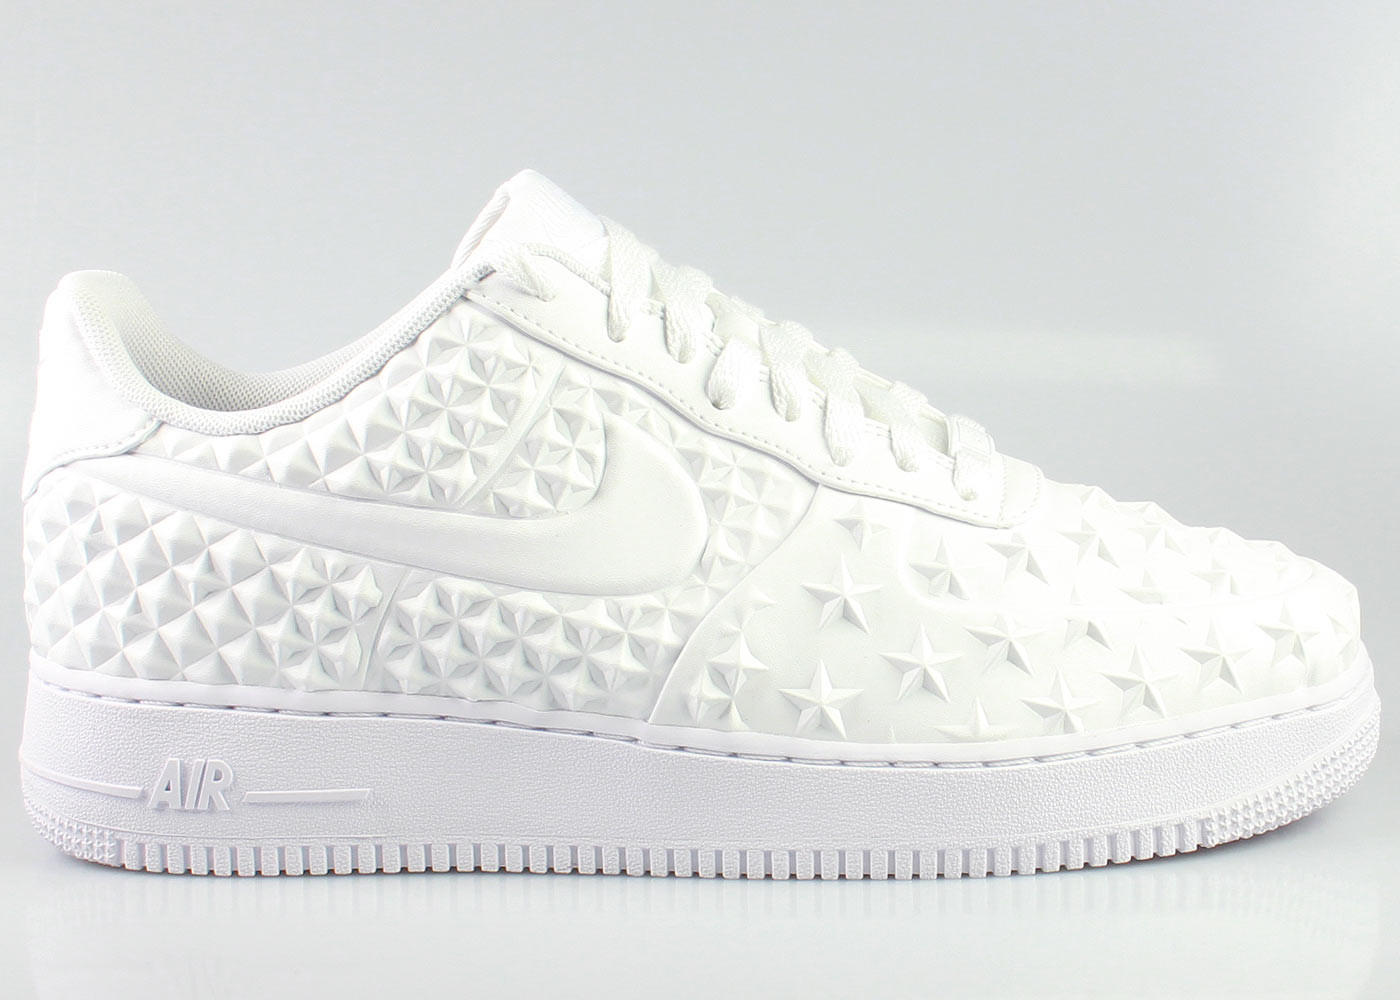 Nike Men s Air Force 1 Low LV8 VT Independence Day Pack - White c23562659c7b